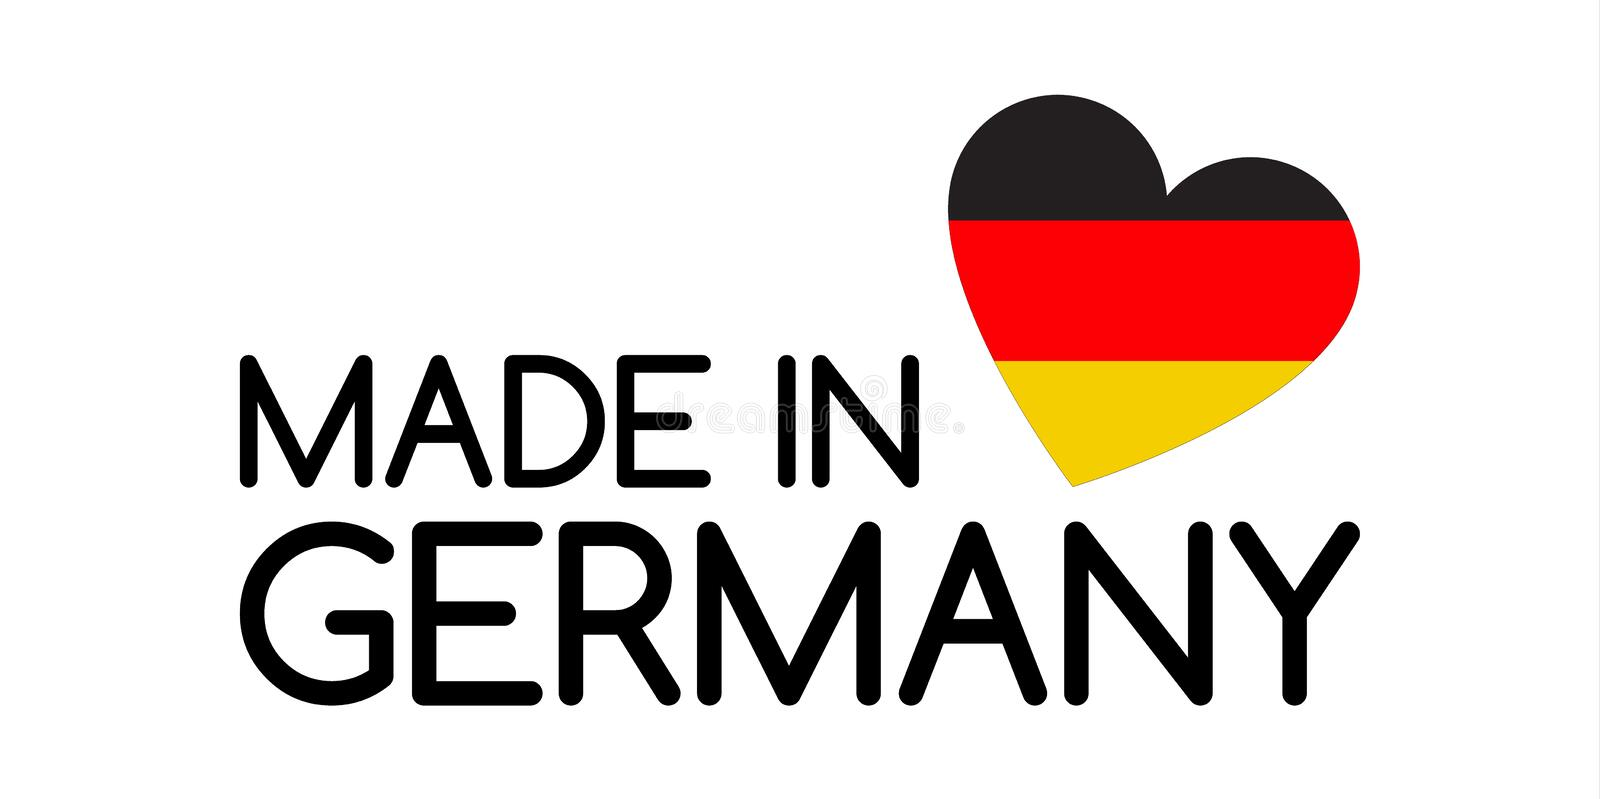 Made In Germany Symbol With Heart In The Colors Of The German